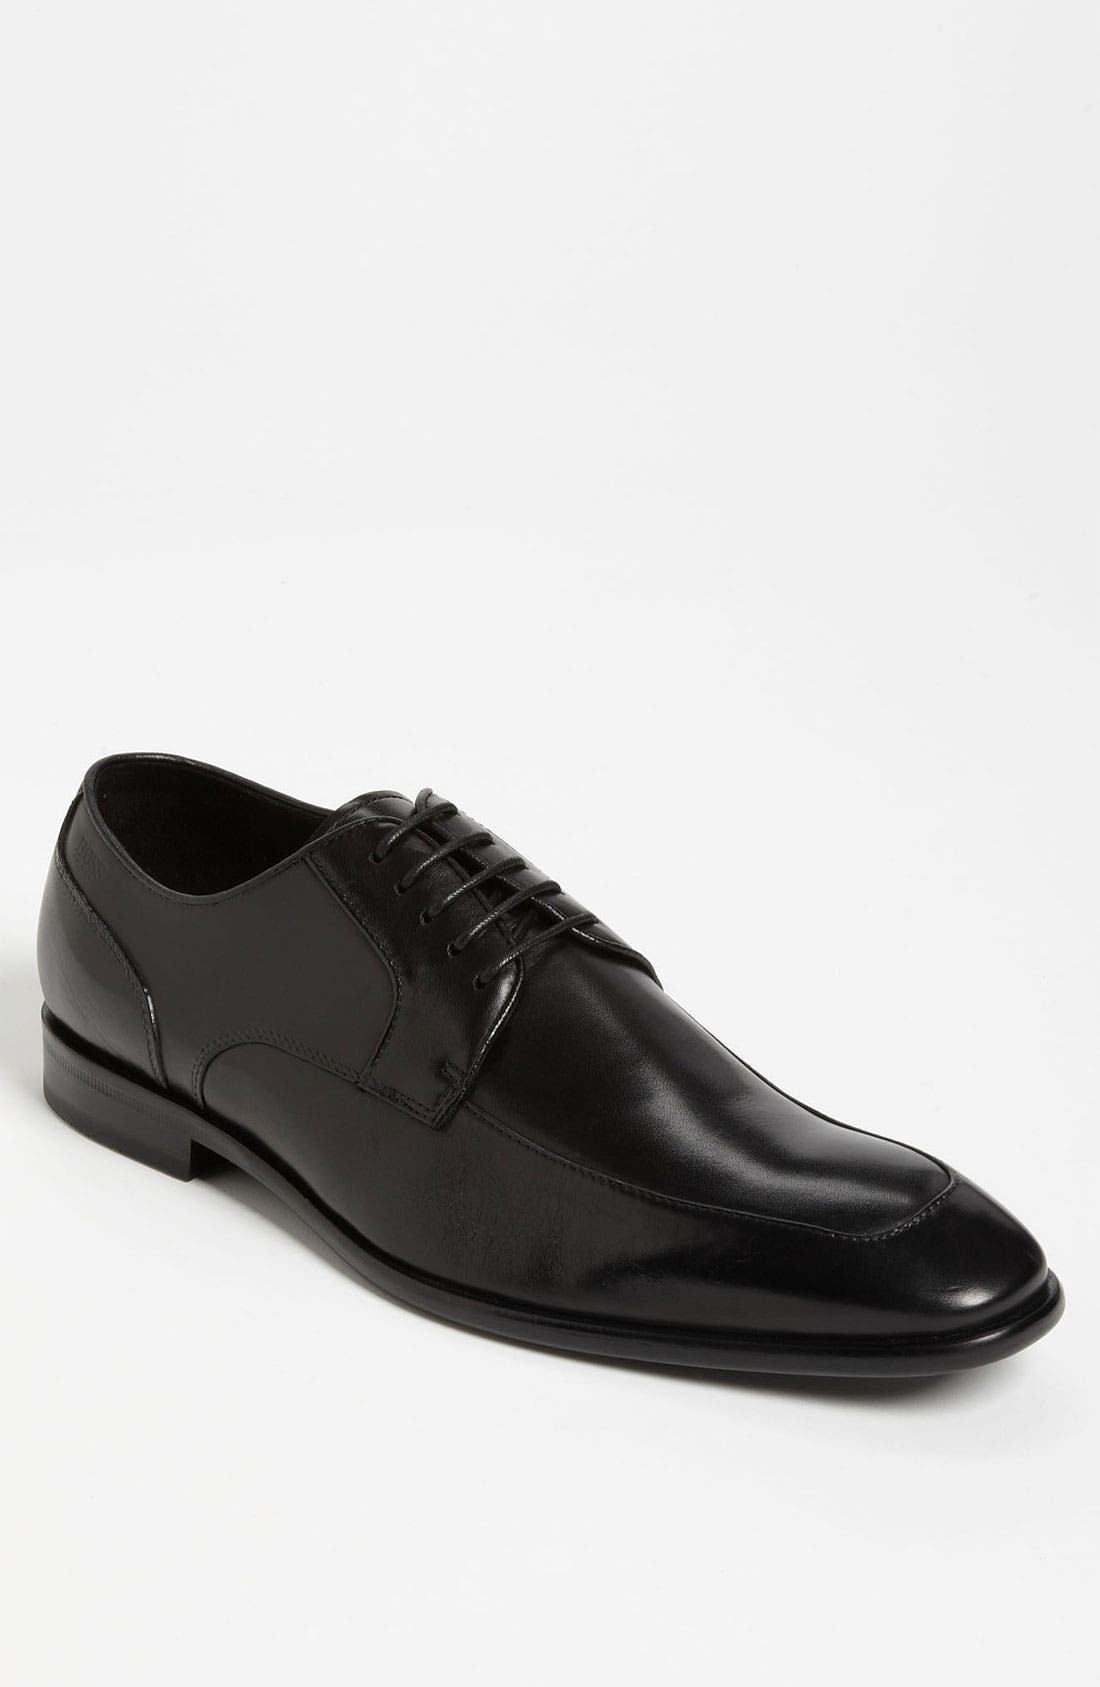 Alternate Image 1 Selected - BOSS HUGO BOSS 'Mettor' Apron Toe Derby